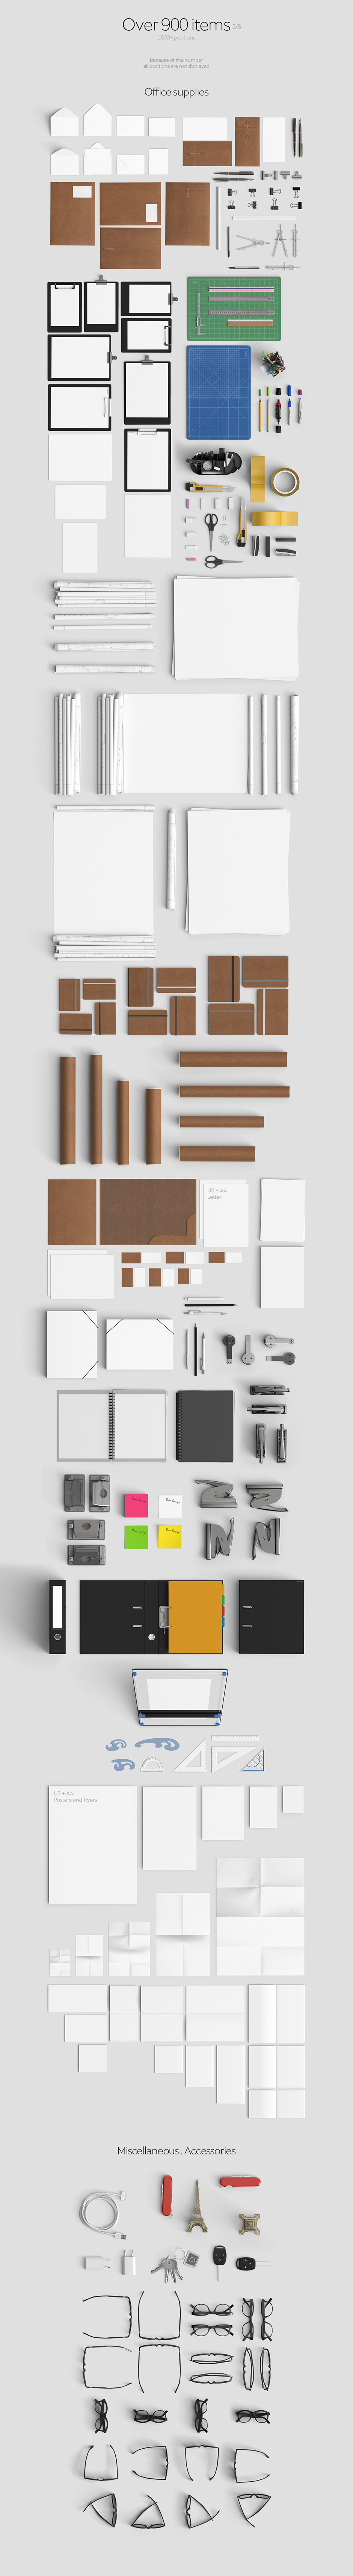 The Most Extensive Mockup Templates Bundle Of All Time